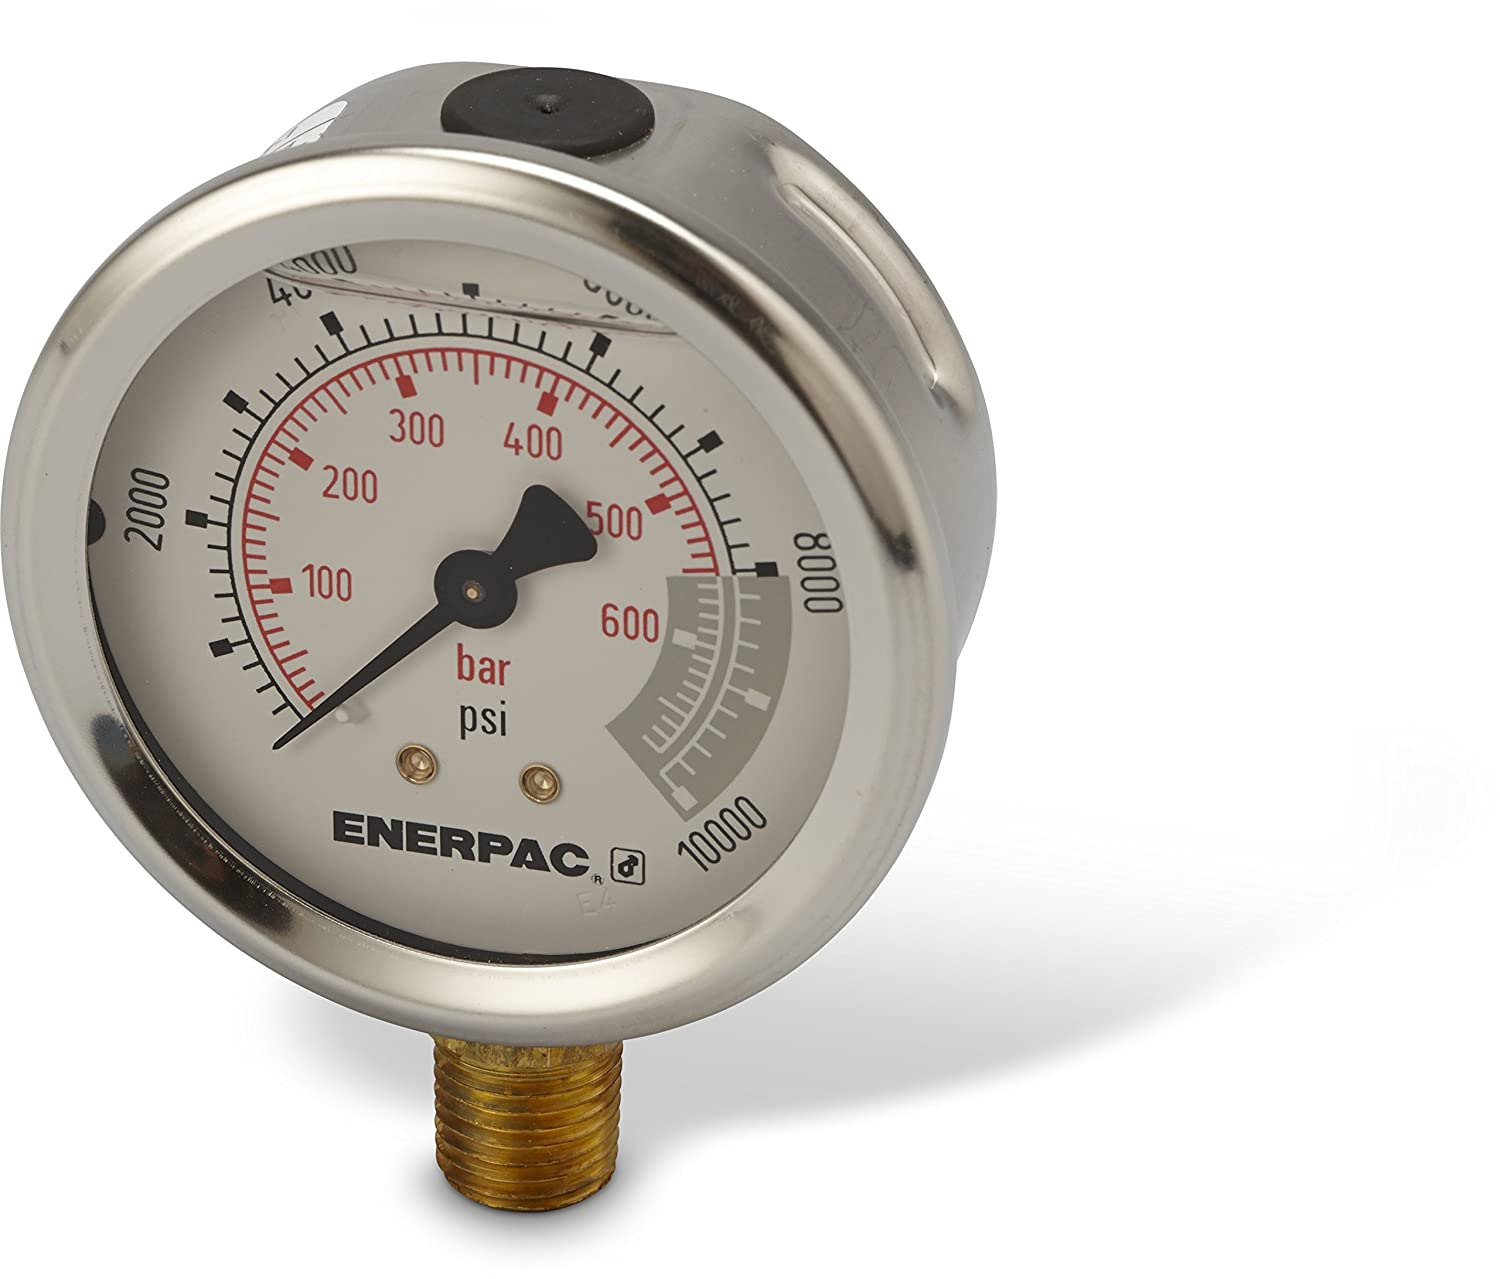 Enerpac G2535L Hydraulic Pressure Gauge With Dual 0 To 10 000 PSI And 700 Bar Range 2 1 Dia Face 4 NPTF Male Lower Mount Connection